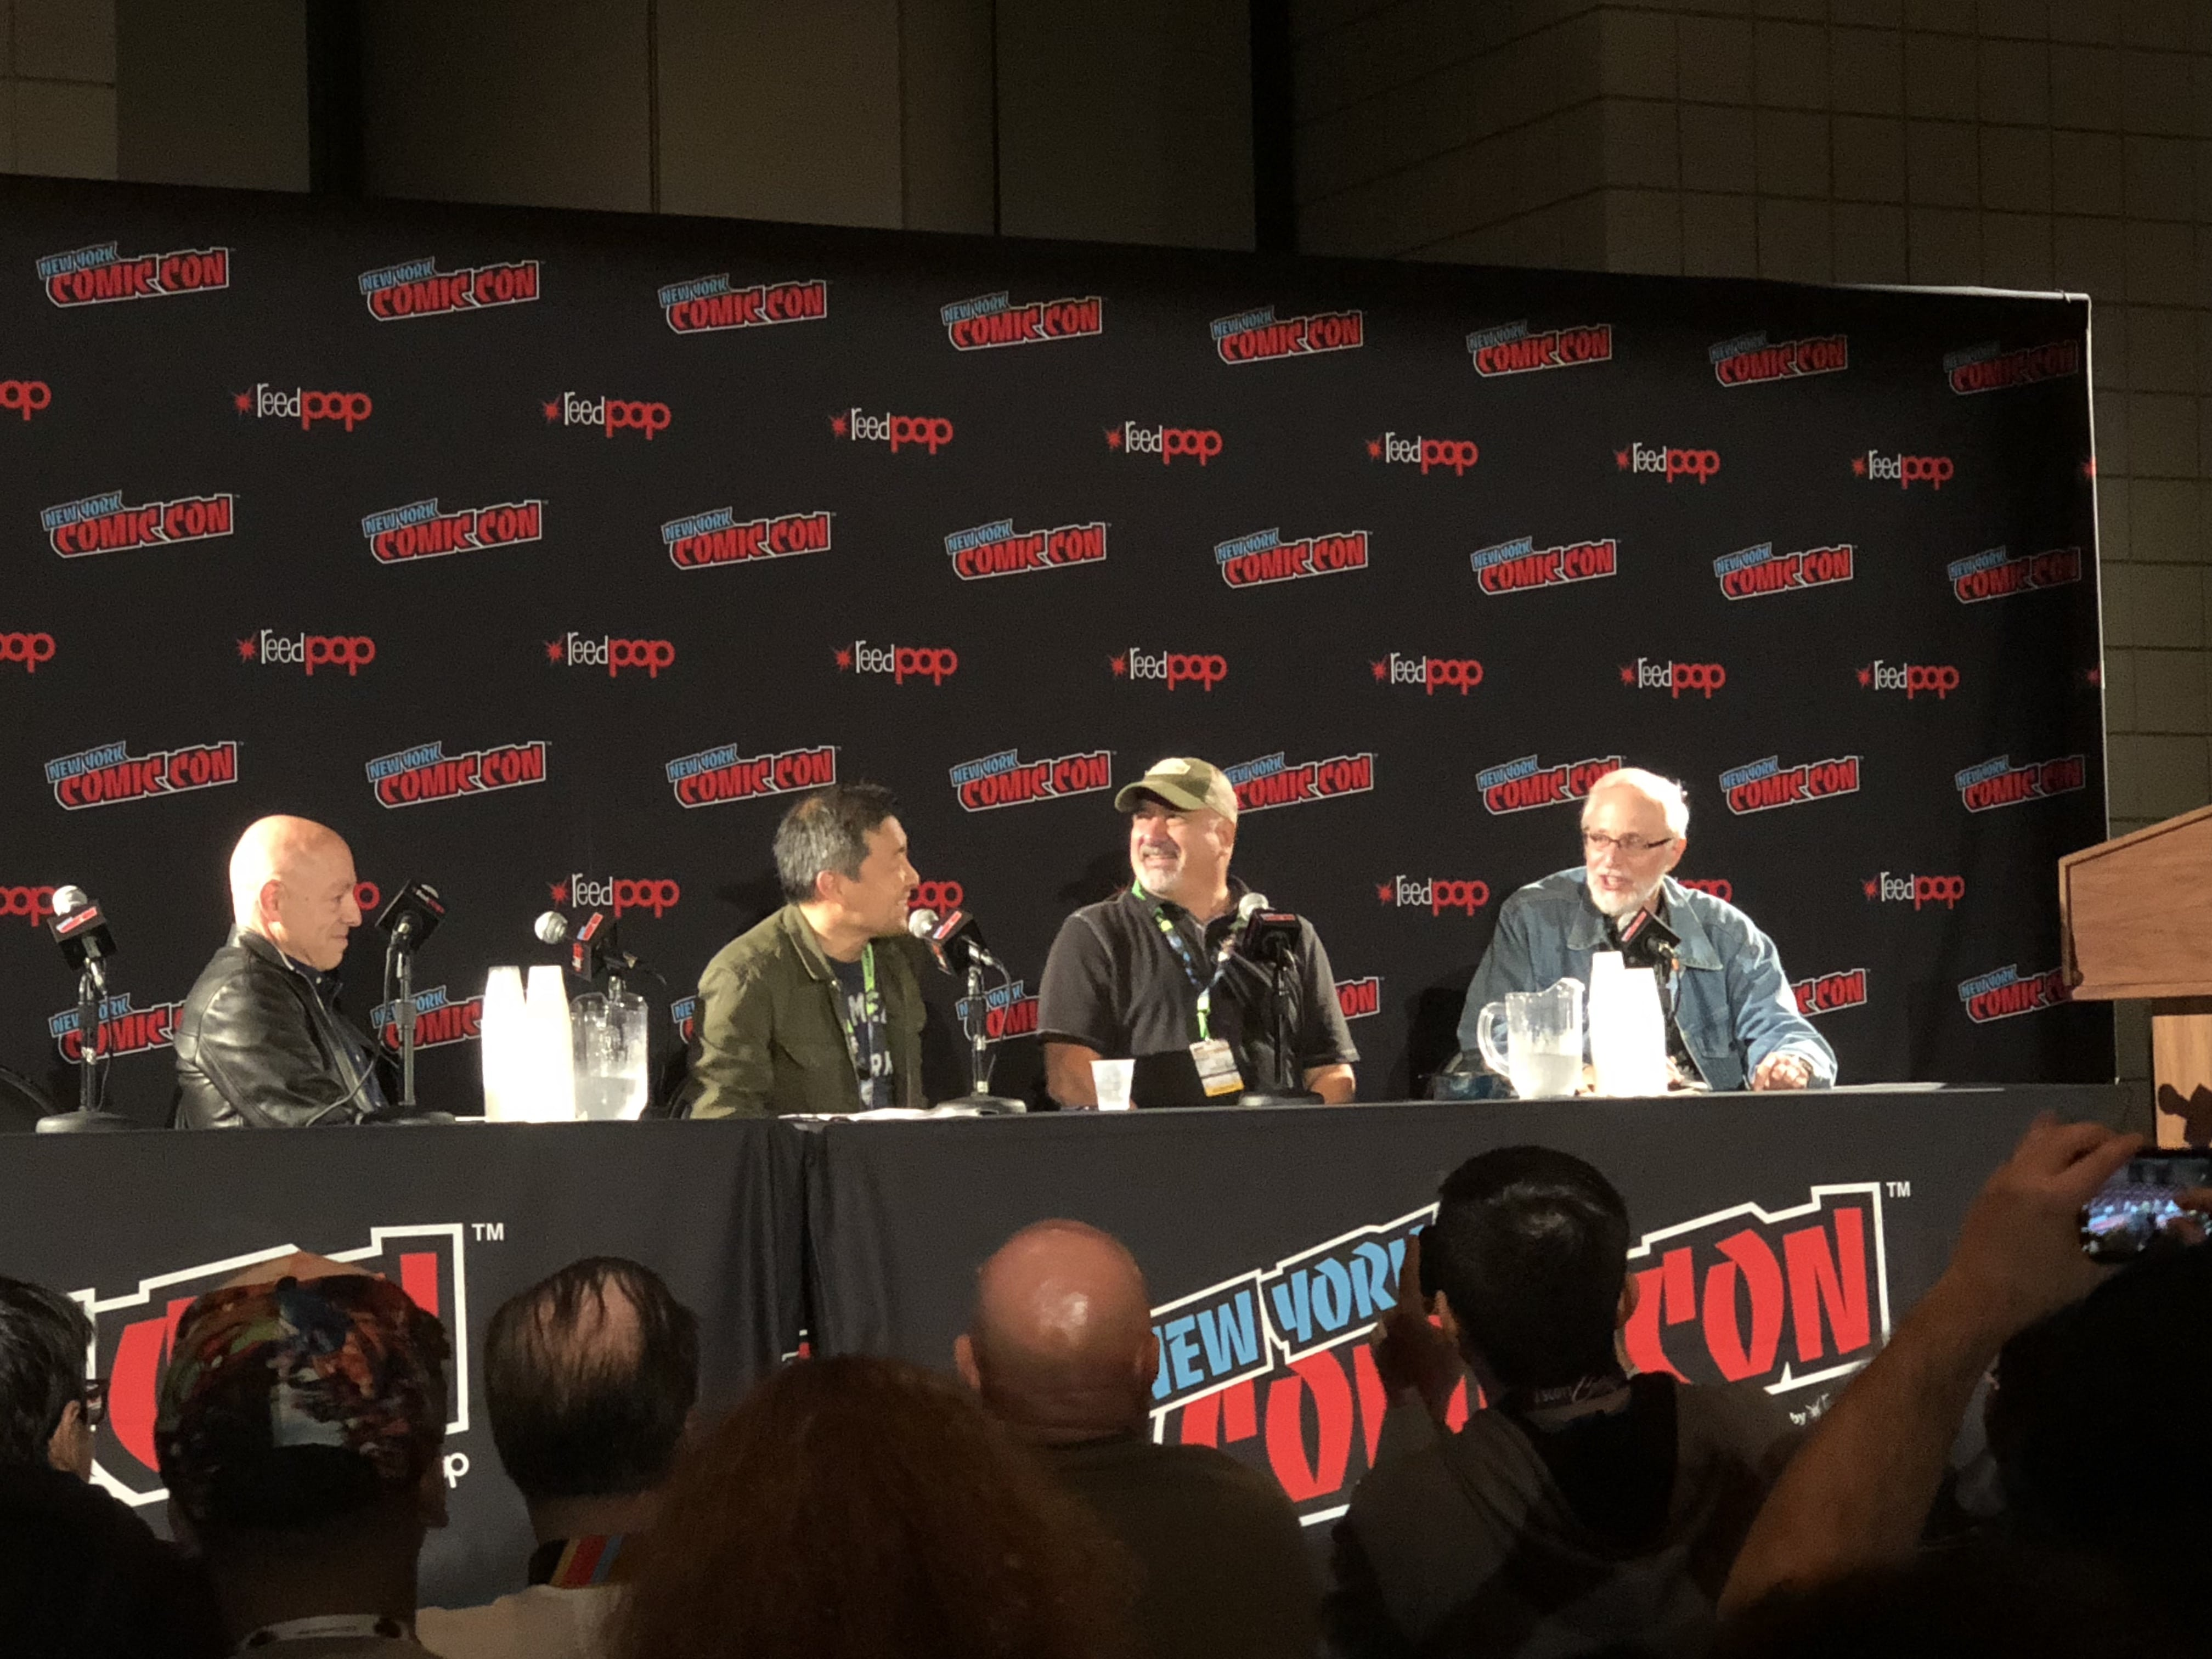 NYCC 2018: Jim Lee and Dan Didio provide fans with a look at the future of DC Universe